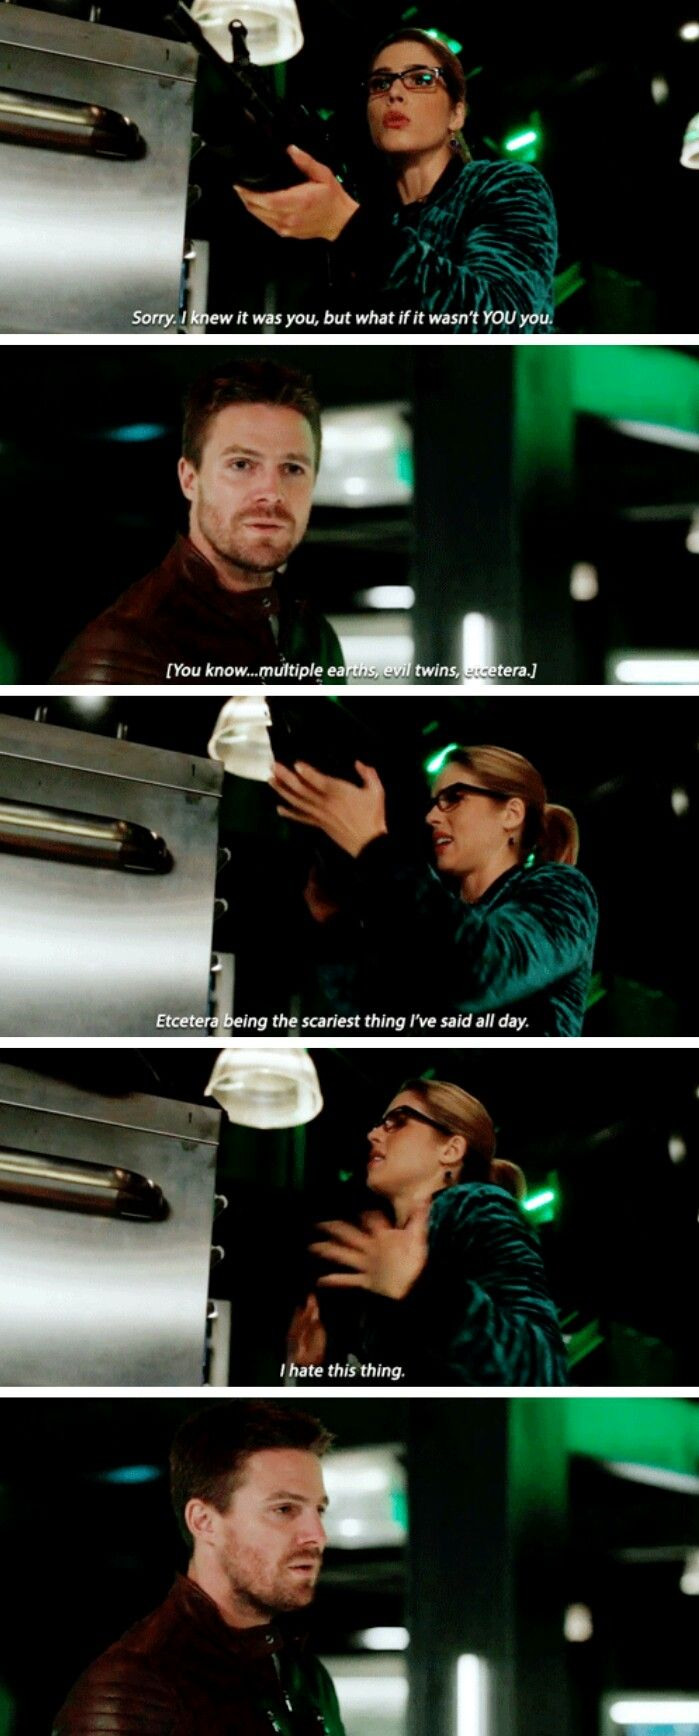 """#Arrow 5x22 """"Missing"""" - """"I knew it was you, but what if it wasn't YOU you. You know, multiple earths... evil twins, etc"""" - #FelicitySmoak #OliverQueen"""